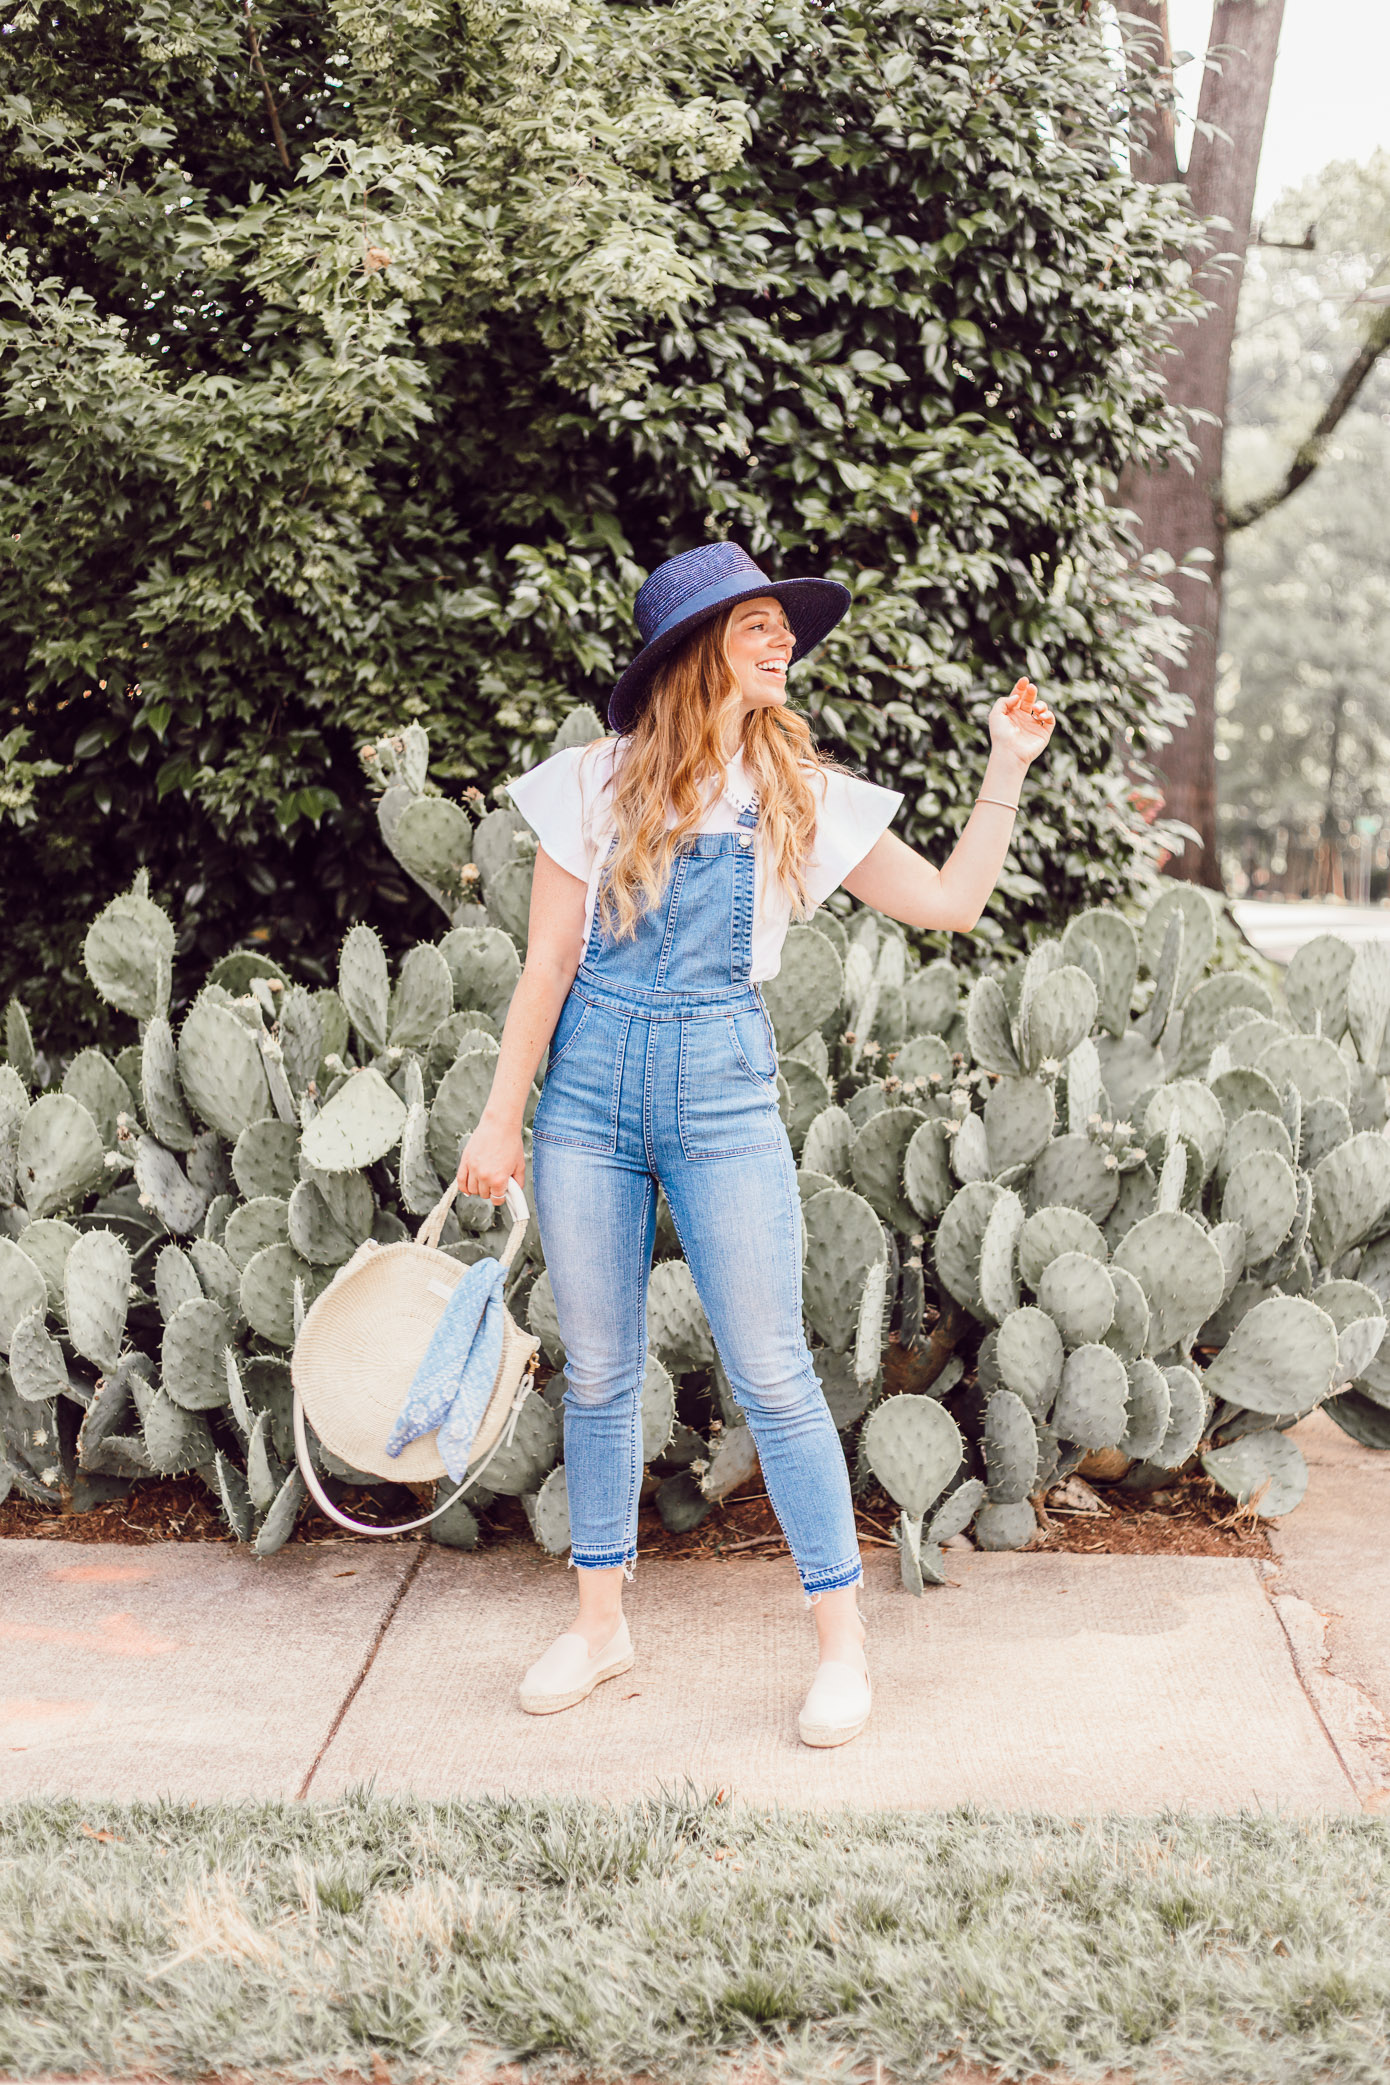 Summer Weekend Overalls Outfit Idea | How to Style Overalls for the Summer featured on Louella Reese #overalls #summerstyle